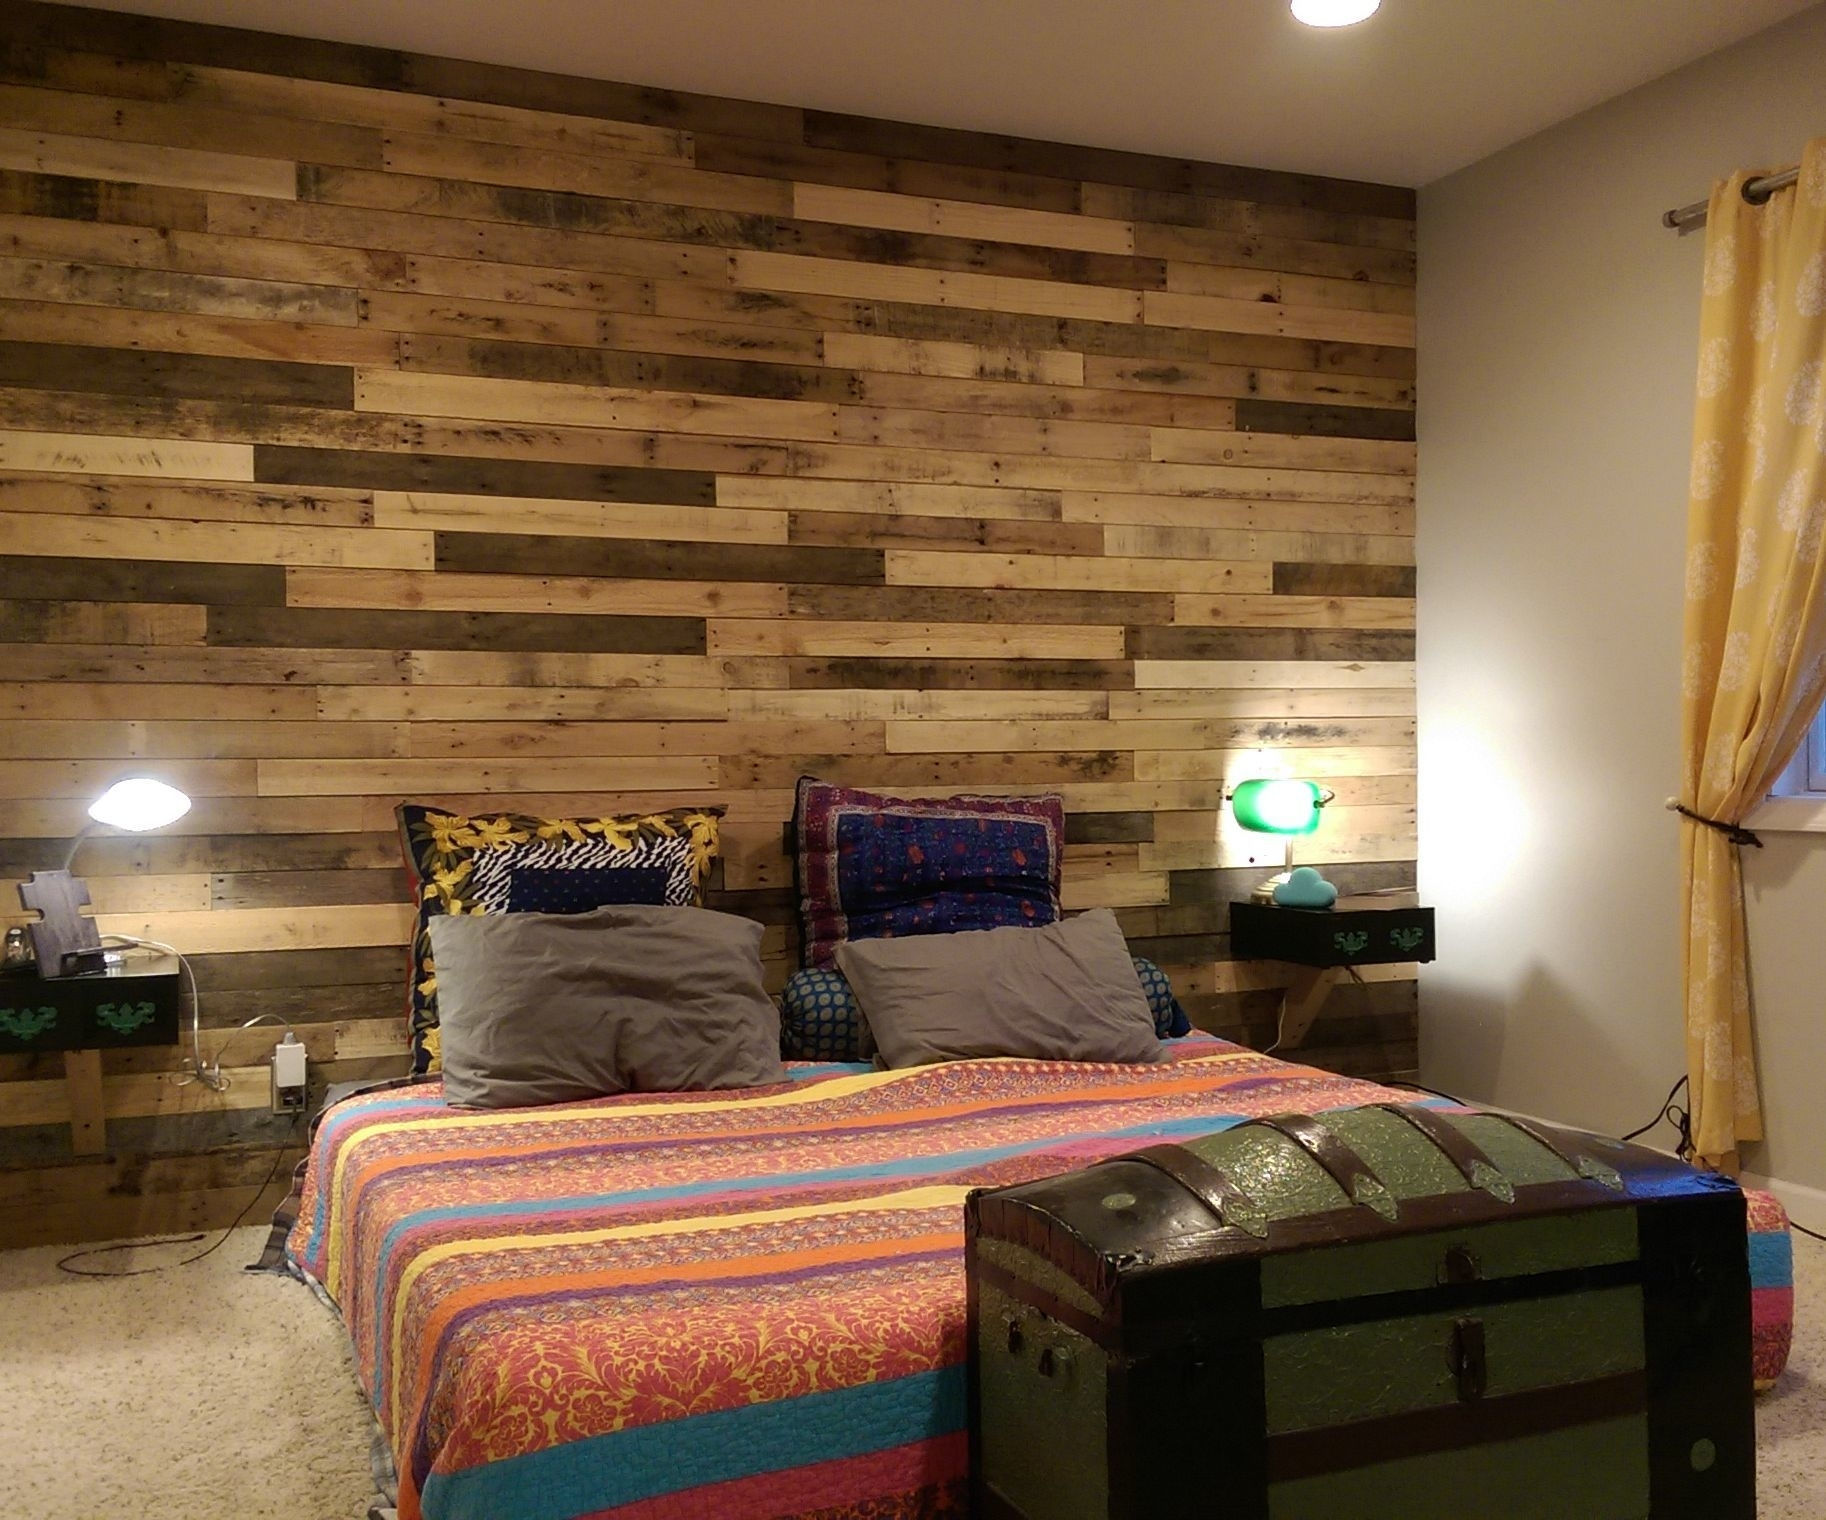 Pallet Accent Wall: 4 Steps (With Pictures) Within Most Recent Wall Accents Made From Pallets (View 11 of 15)